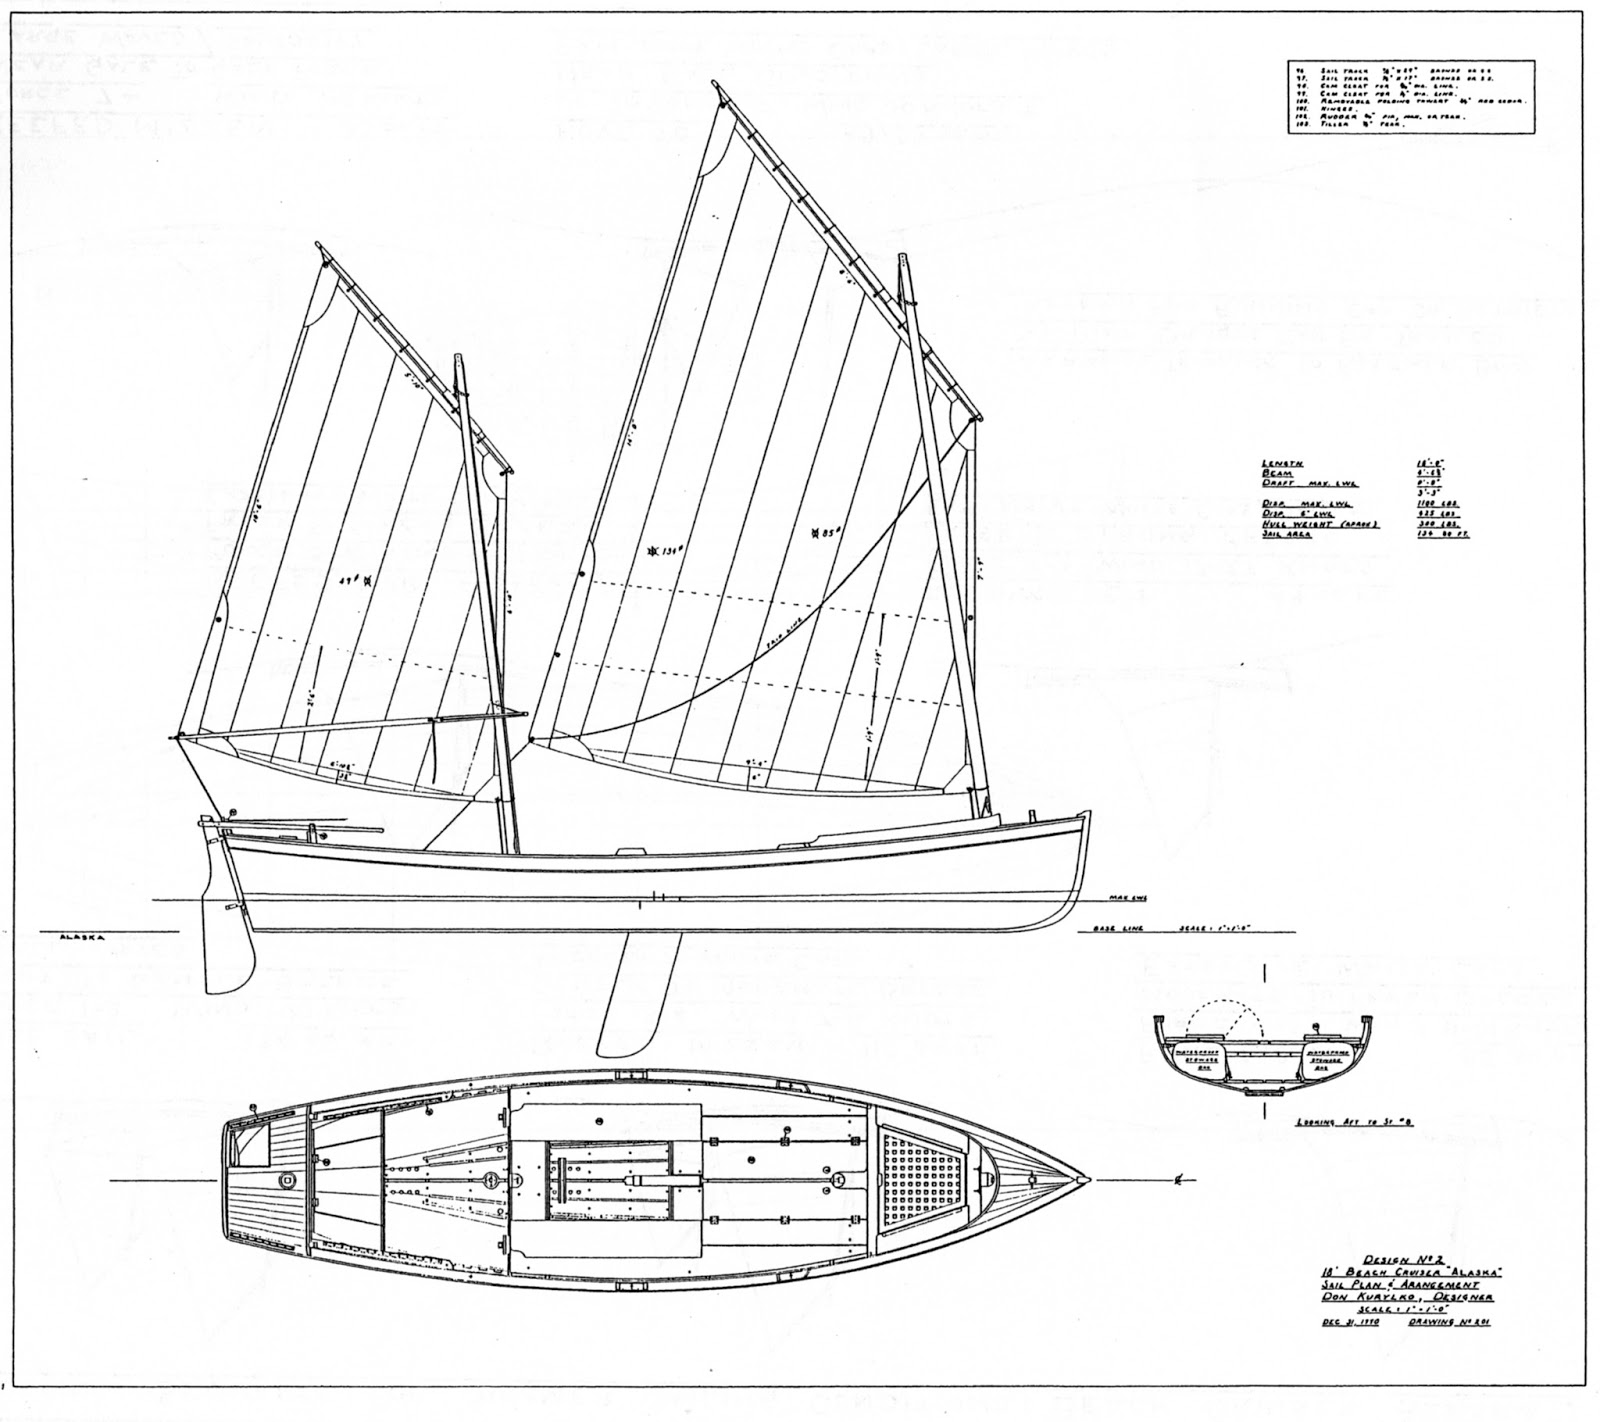 The Plan For My Boat